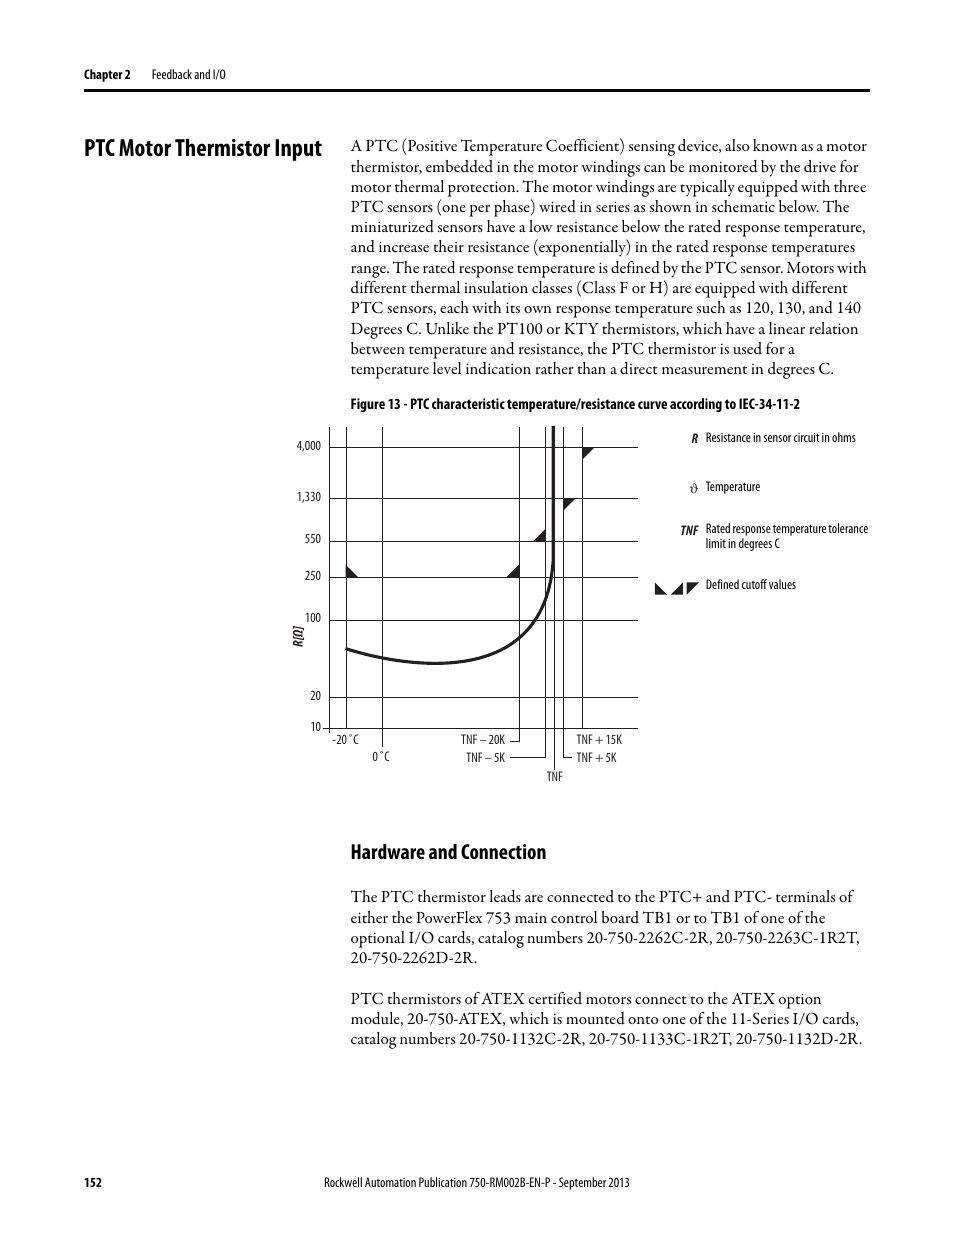 ptc motor thermistor input hardware and connection rockwell ptc motor thermistor input hardware and connection rockwell automation 20g powerflex 750 series ac drives user manual page 152 432